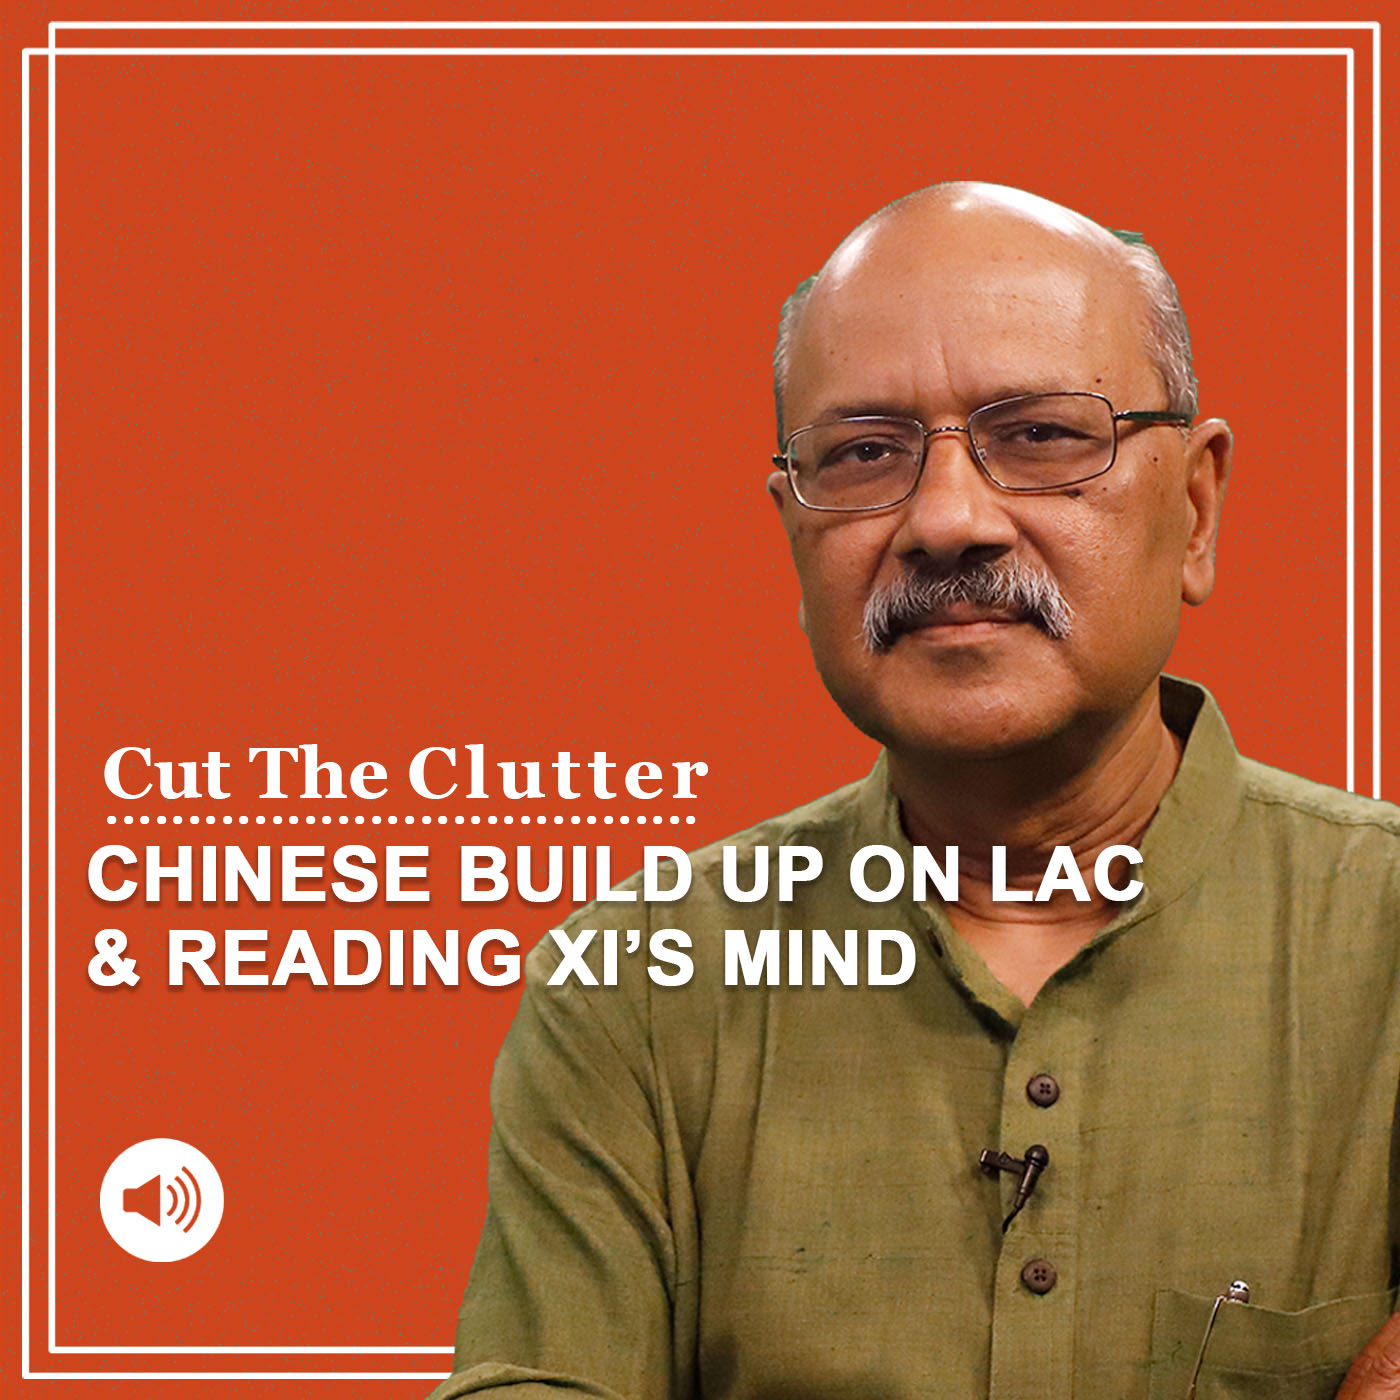 Cut The Clutter: As India-China border talks drag on & new details on Chinese buildup emerge, we try reading Xi's mind